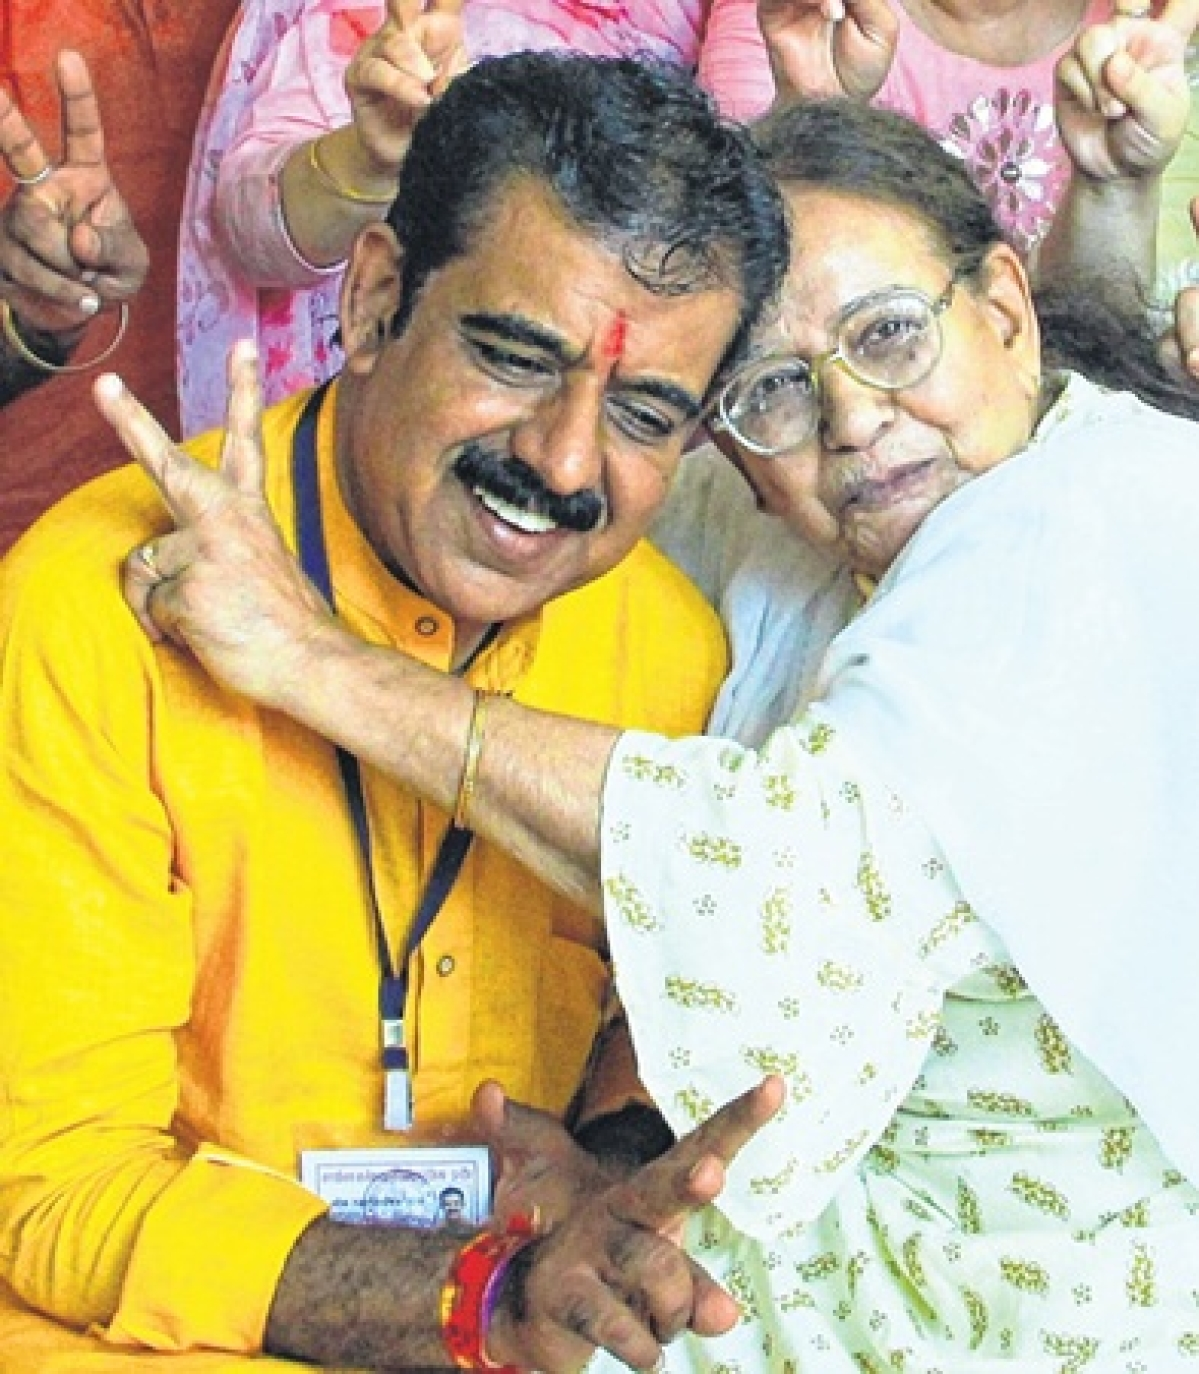 Indore: Shankar Lalwani is Indore's Lal